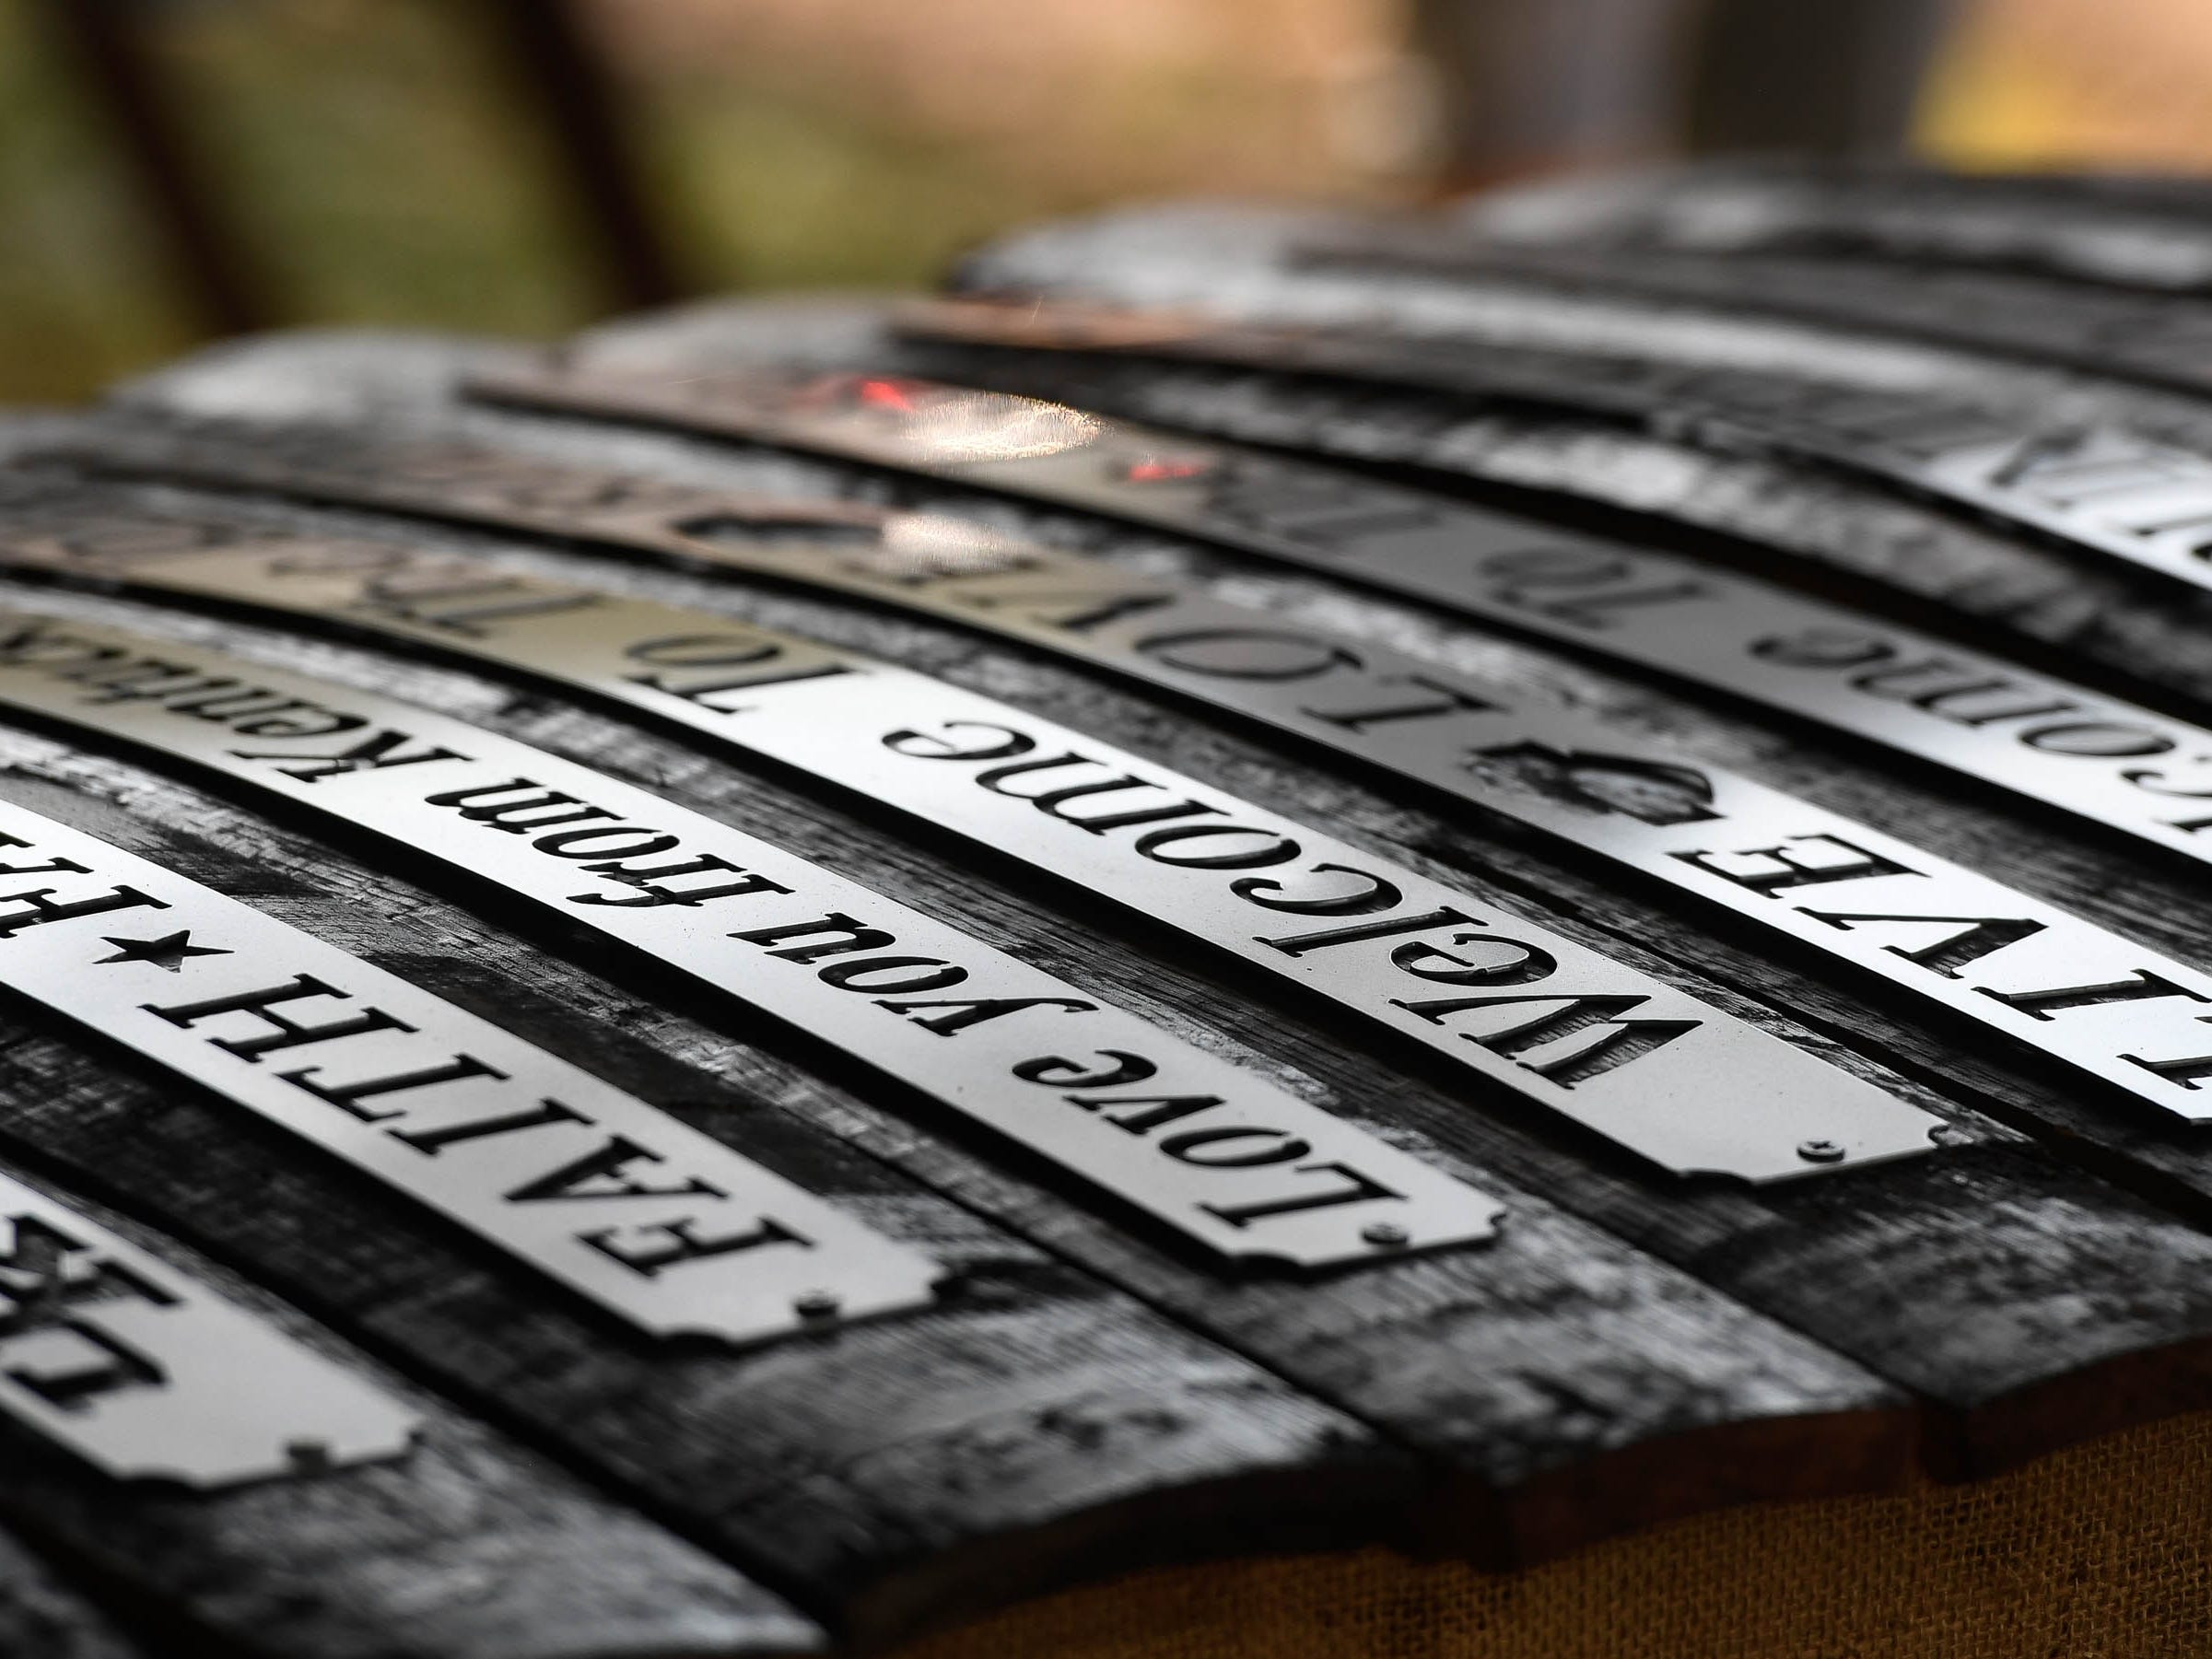 Welcome greetings and wise words cut out of steel and mounted to whiskey barrel staves for sale at the Henderson Lions Arts and Crafts festival held at Audubon State Park Saturday. The event, with nearly 100 vendors selling everything from seasonal florals to iron work, continues Sunday 10 a.m. to 4 p.m. October 6, 2018.